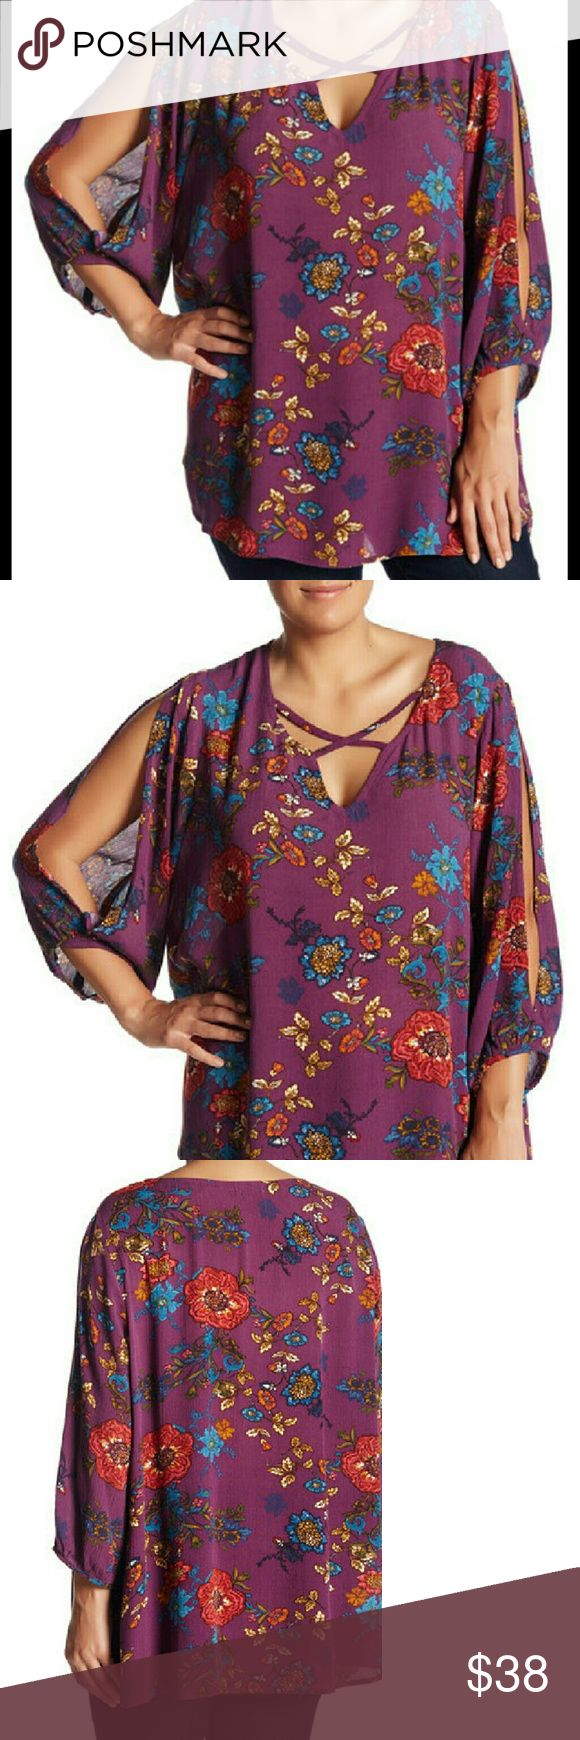 "Lucy Plus Size Floral Tunic Lucy is a lovely asian inspired floral tunic blouse. Has V-neck w/ criss cross details, 3/4 sleeves with cold shoulder cut outs and banded trim.  Split sides seams, curved hem, approx 30"" long. Model is wearing a 1X bust 36-waist 39-hips 39.  100% rayon  arrives 1/6/17 Tops Tunics"